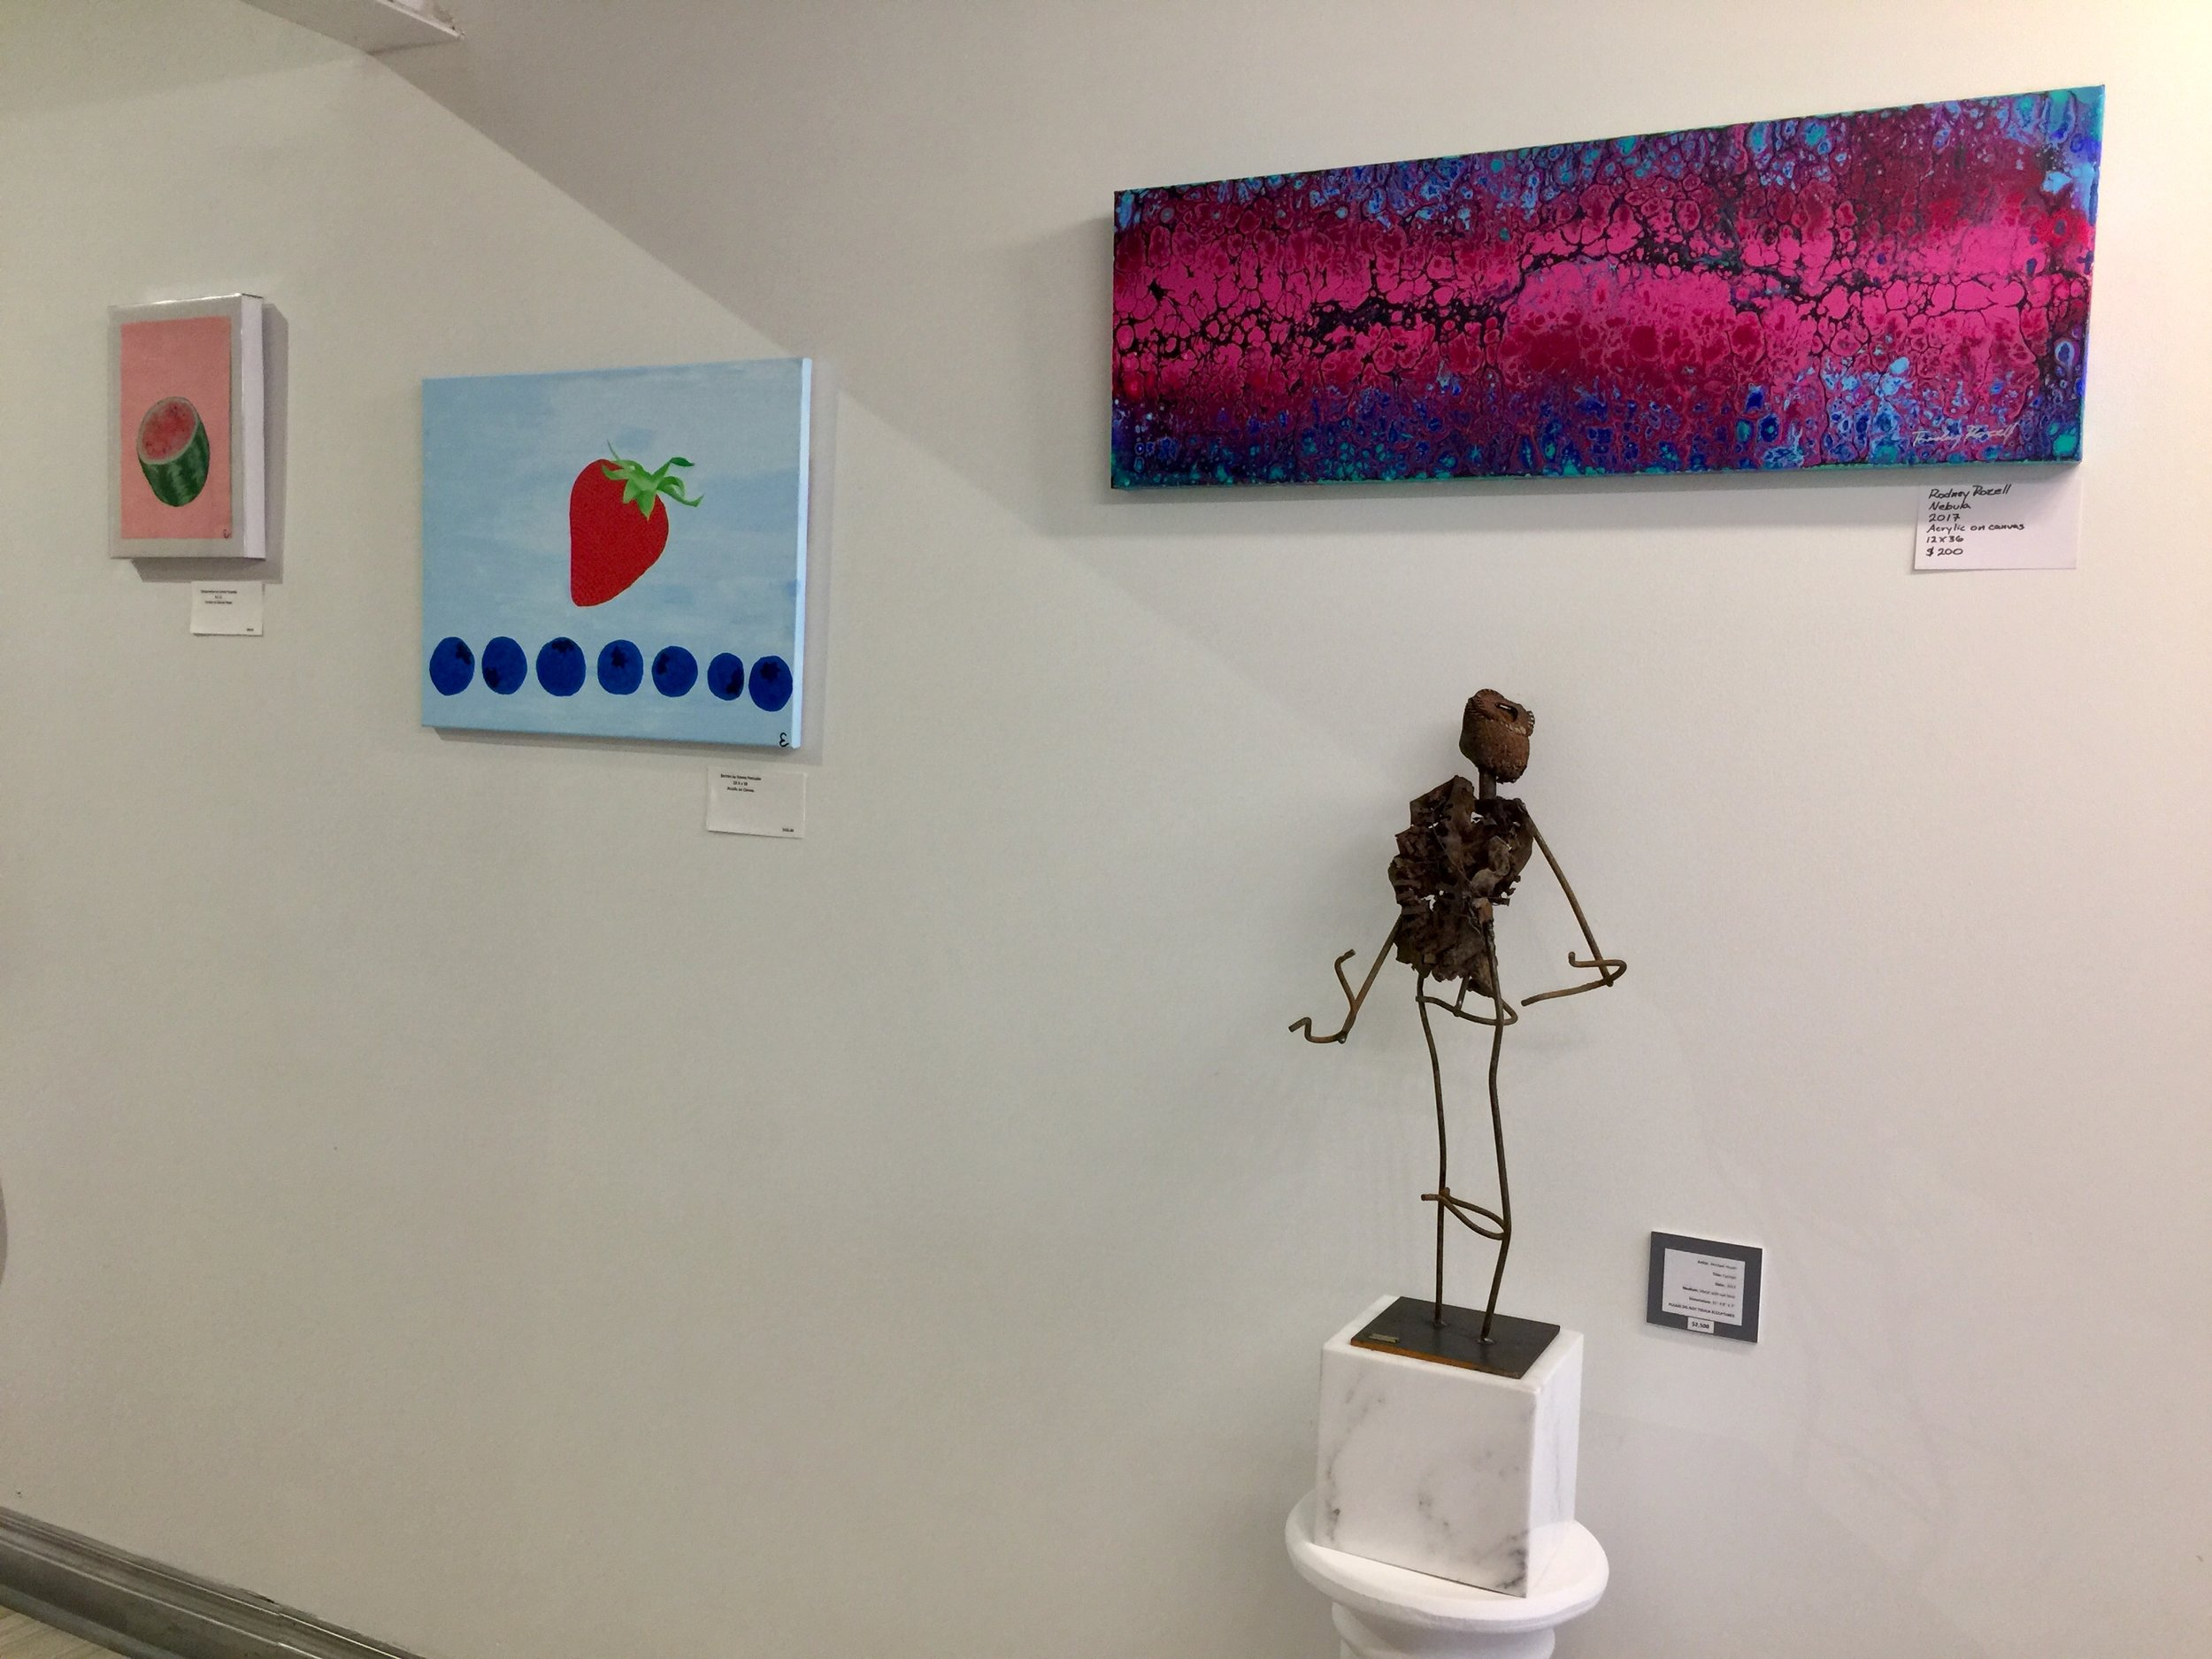 Paintings by Emma Fresonke and Rodney Rozell, sculpture by Michael Hanes